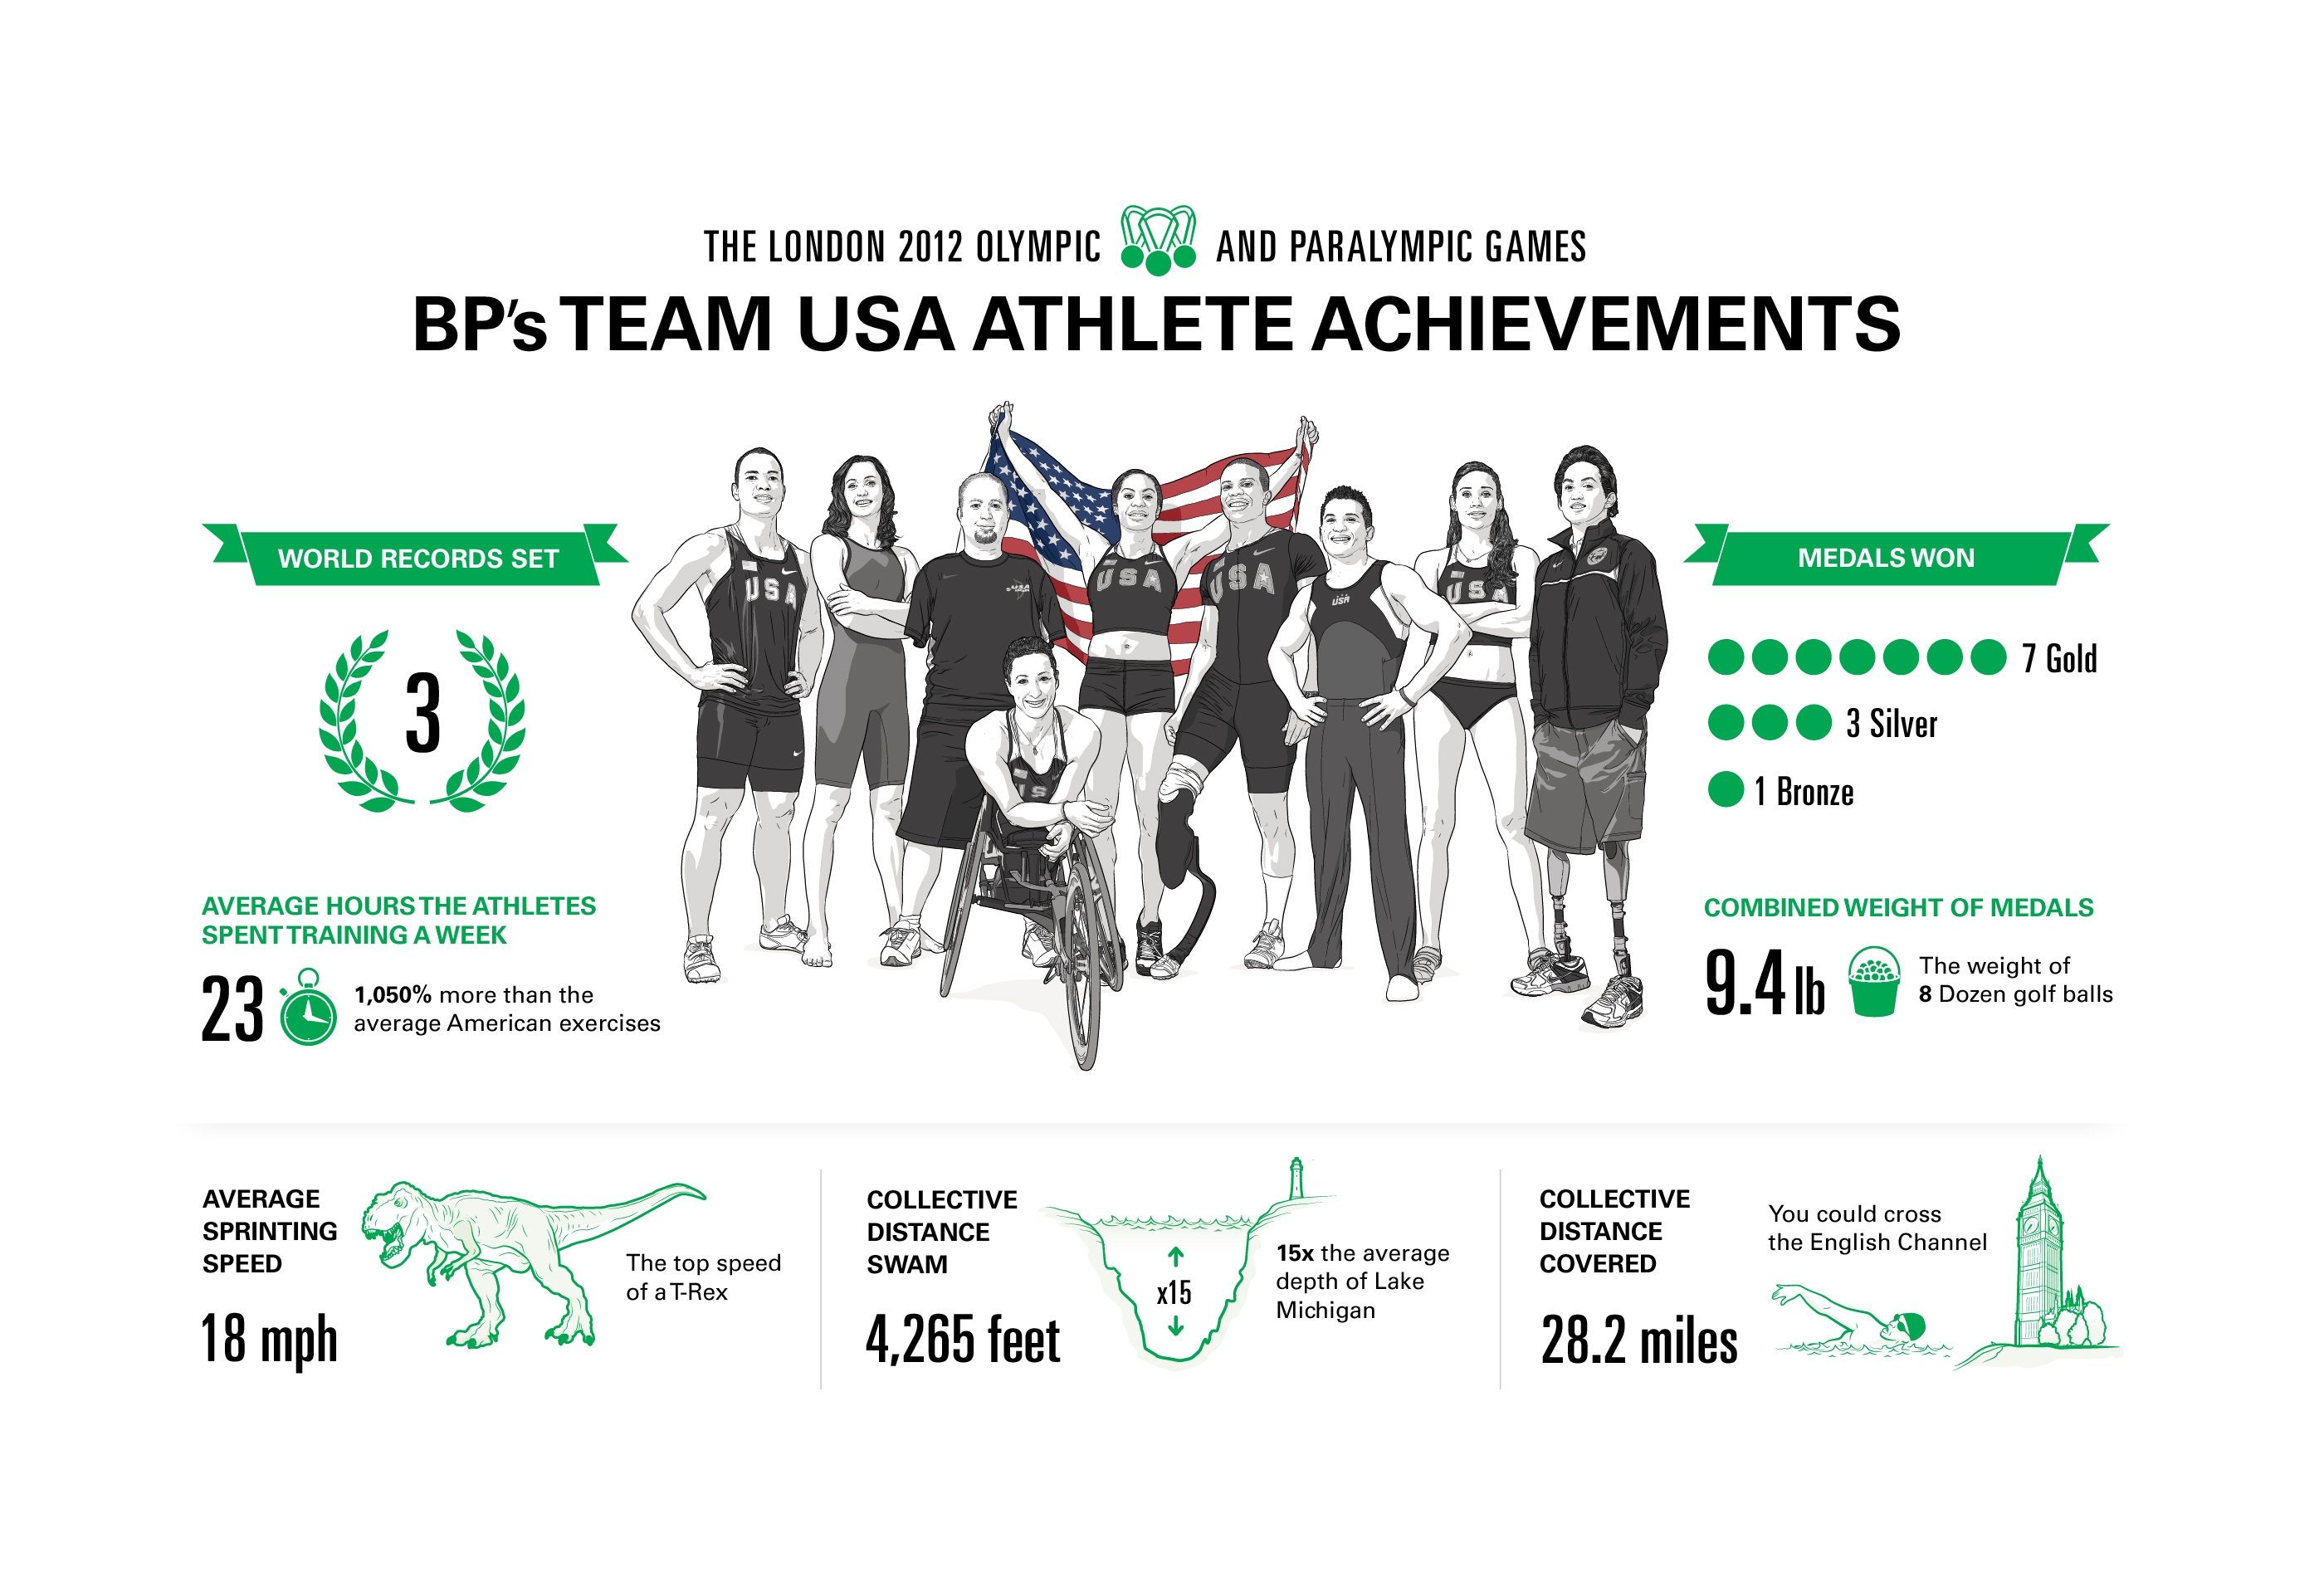 Team USA Athlete Achievements Infographic by Max Hancock